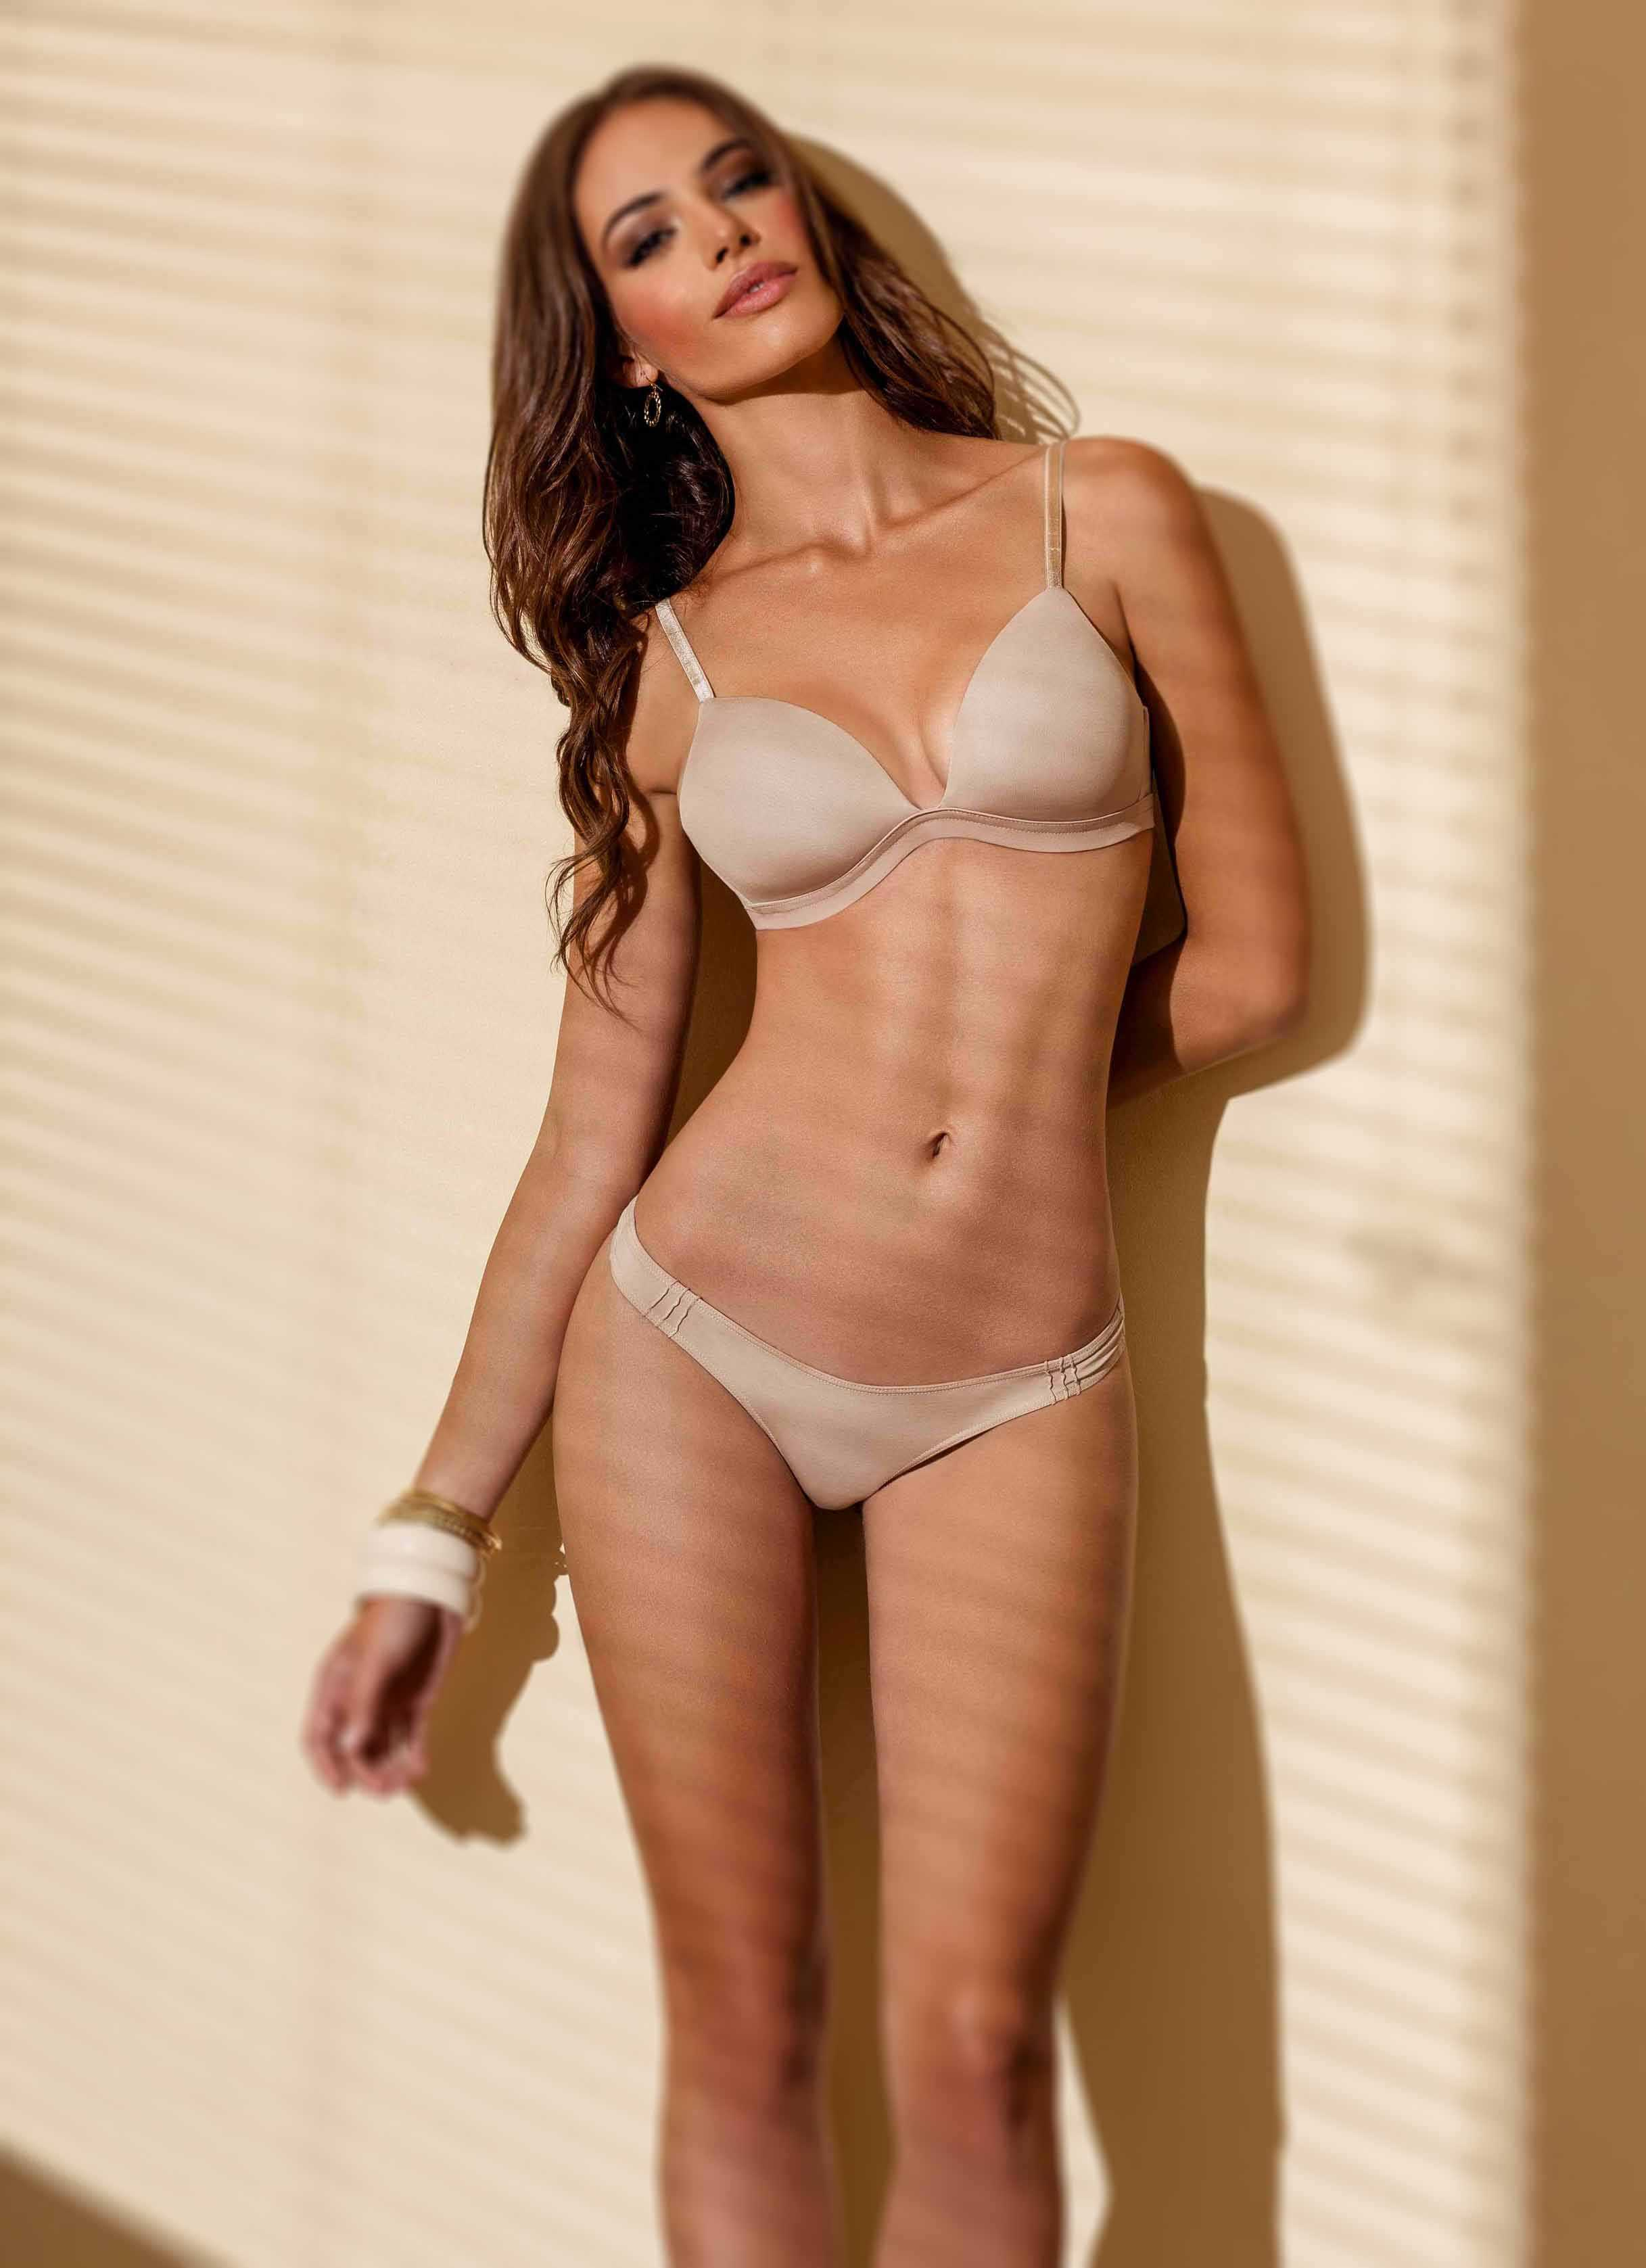 Walthamstow escorts Walthamstow Escorts – Eve London Escorts|Quality Escorts In London At Great Prices